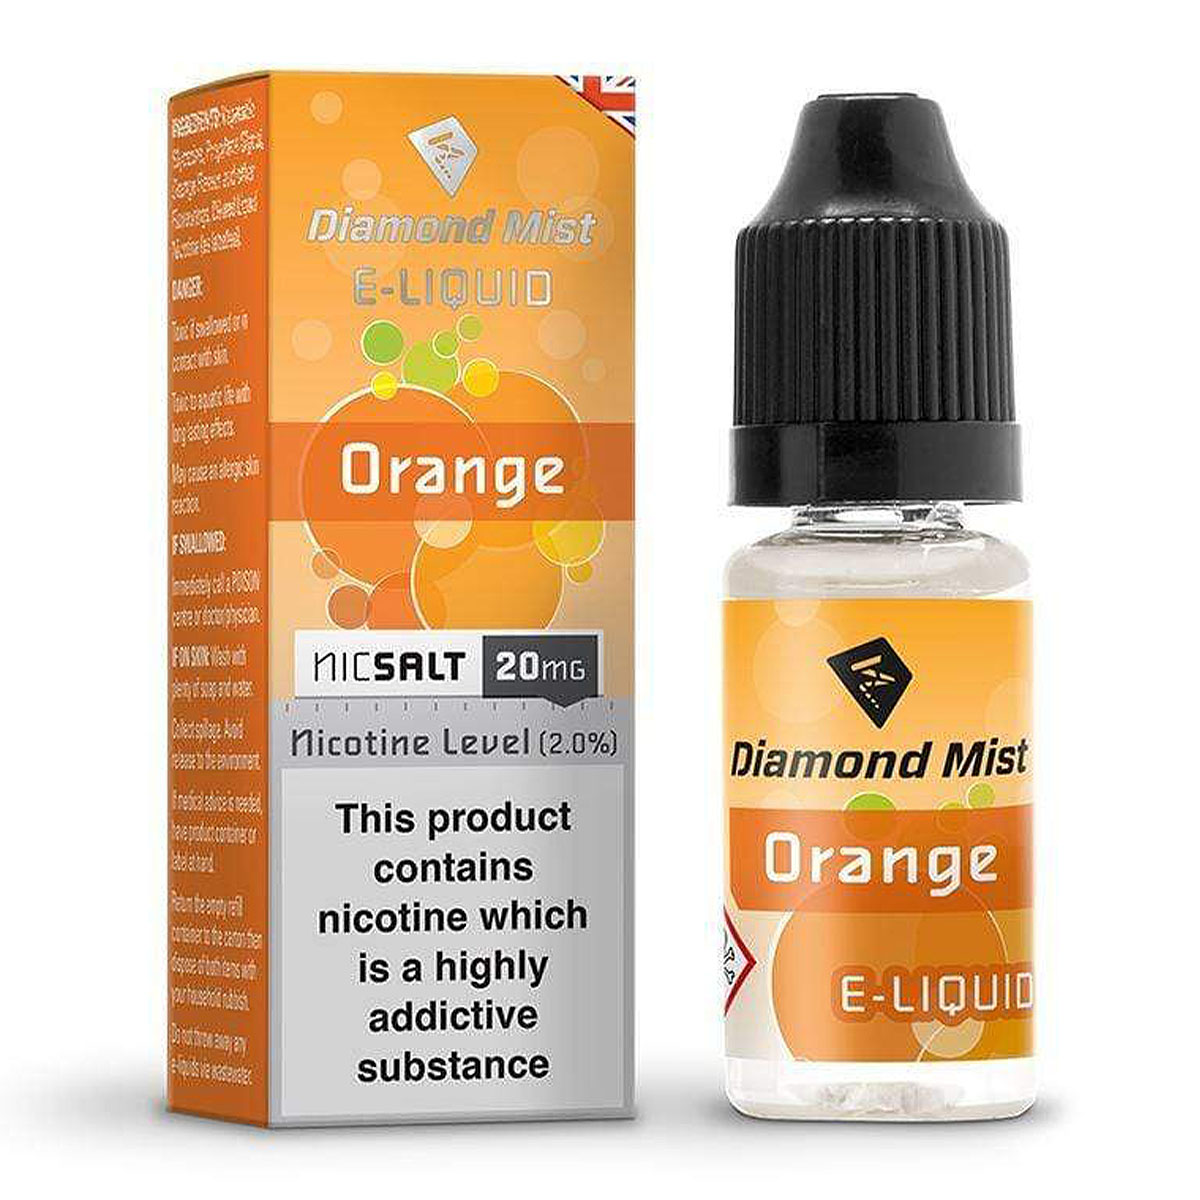 ORANGE NIC SALT BY DIAMOND MIST